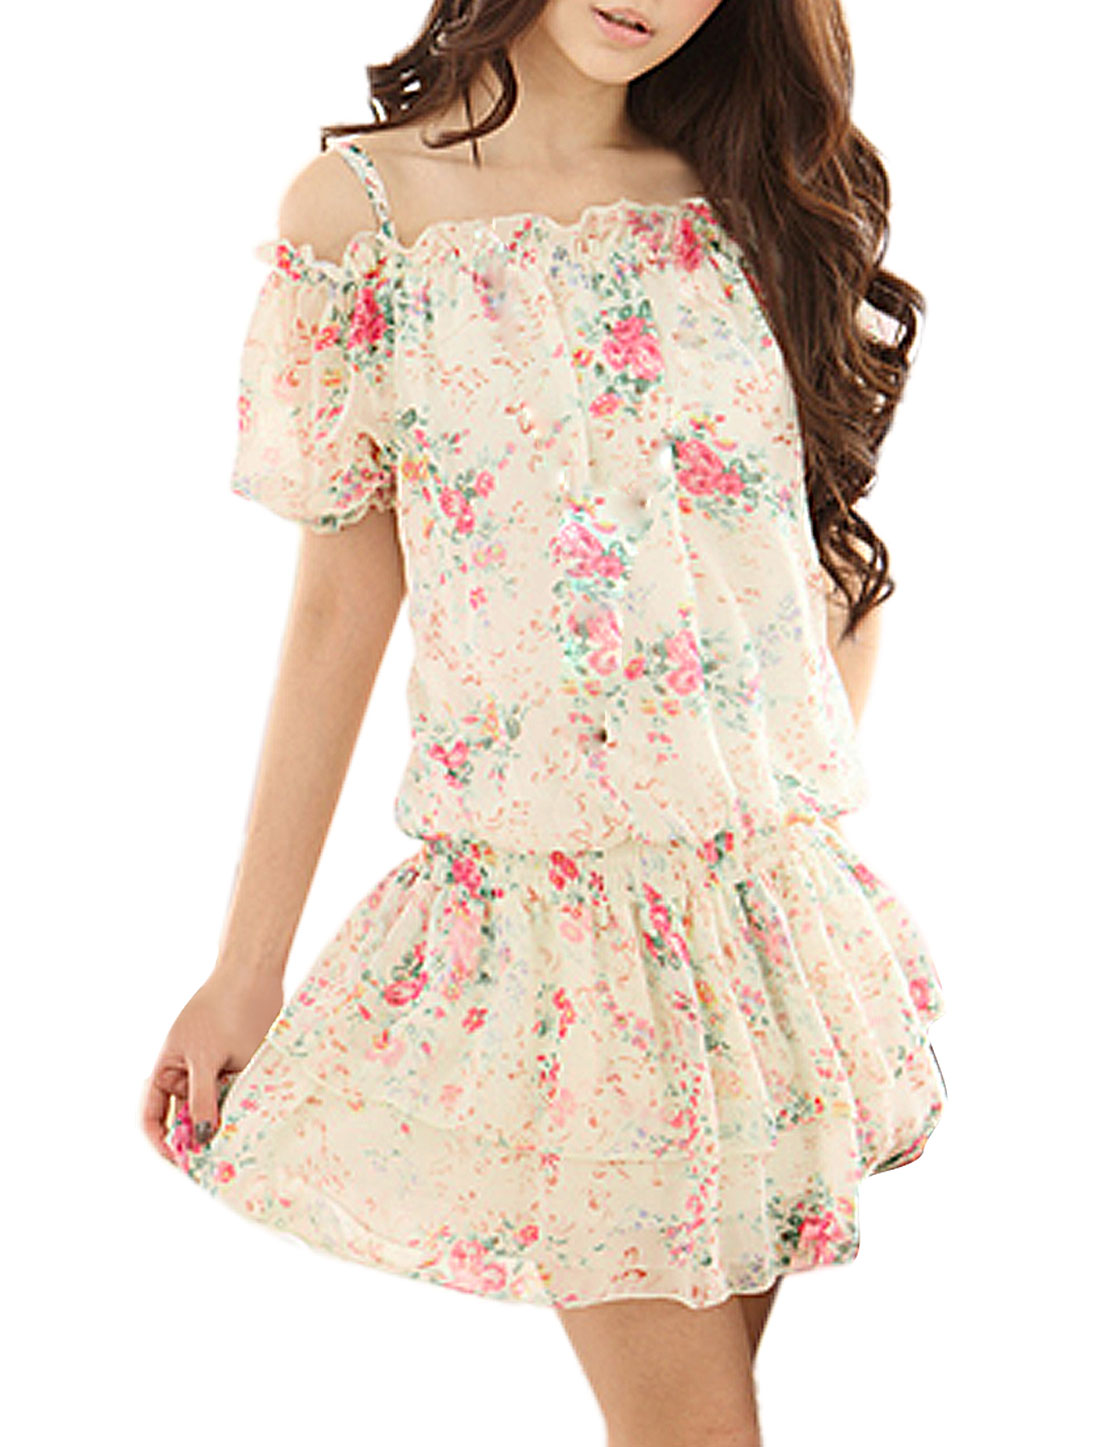 Ladies Colored Flower Prints Off Shoulder Mini Dress S